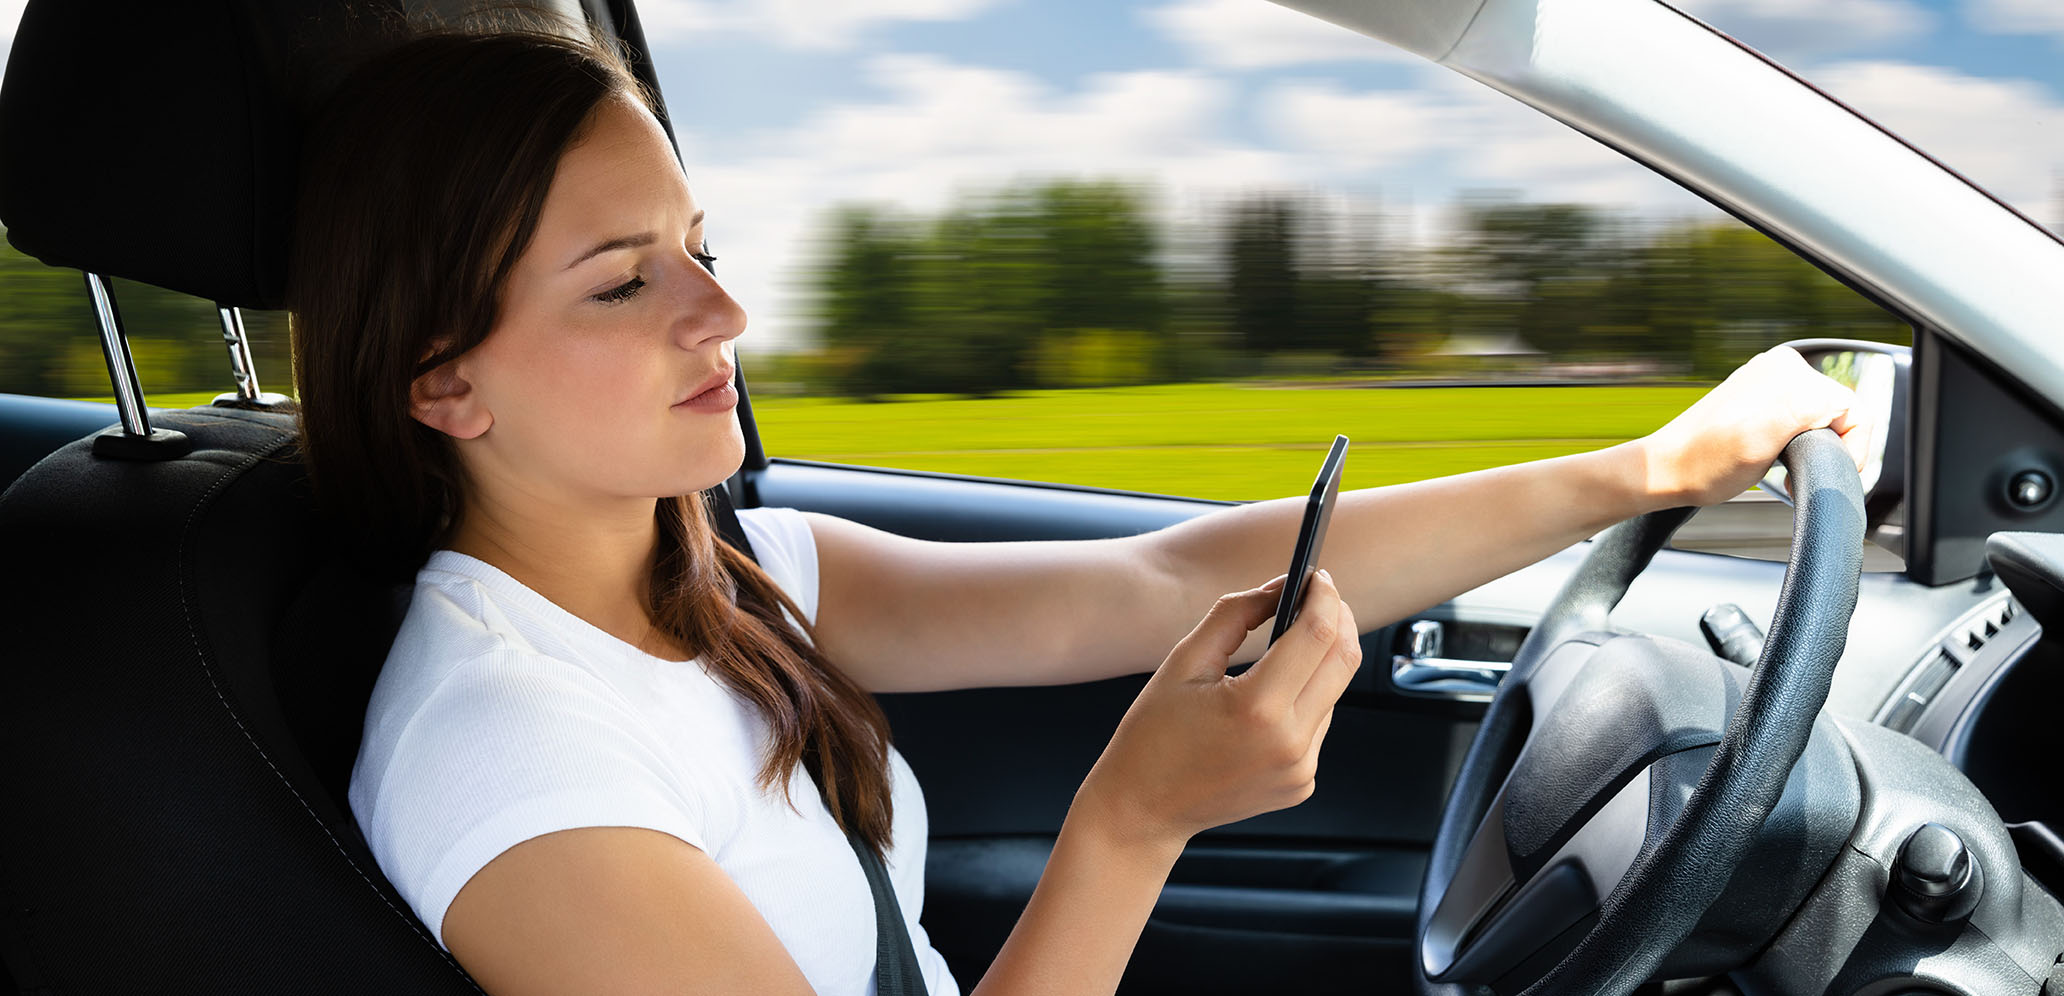 texting while driving